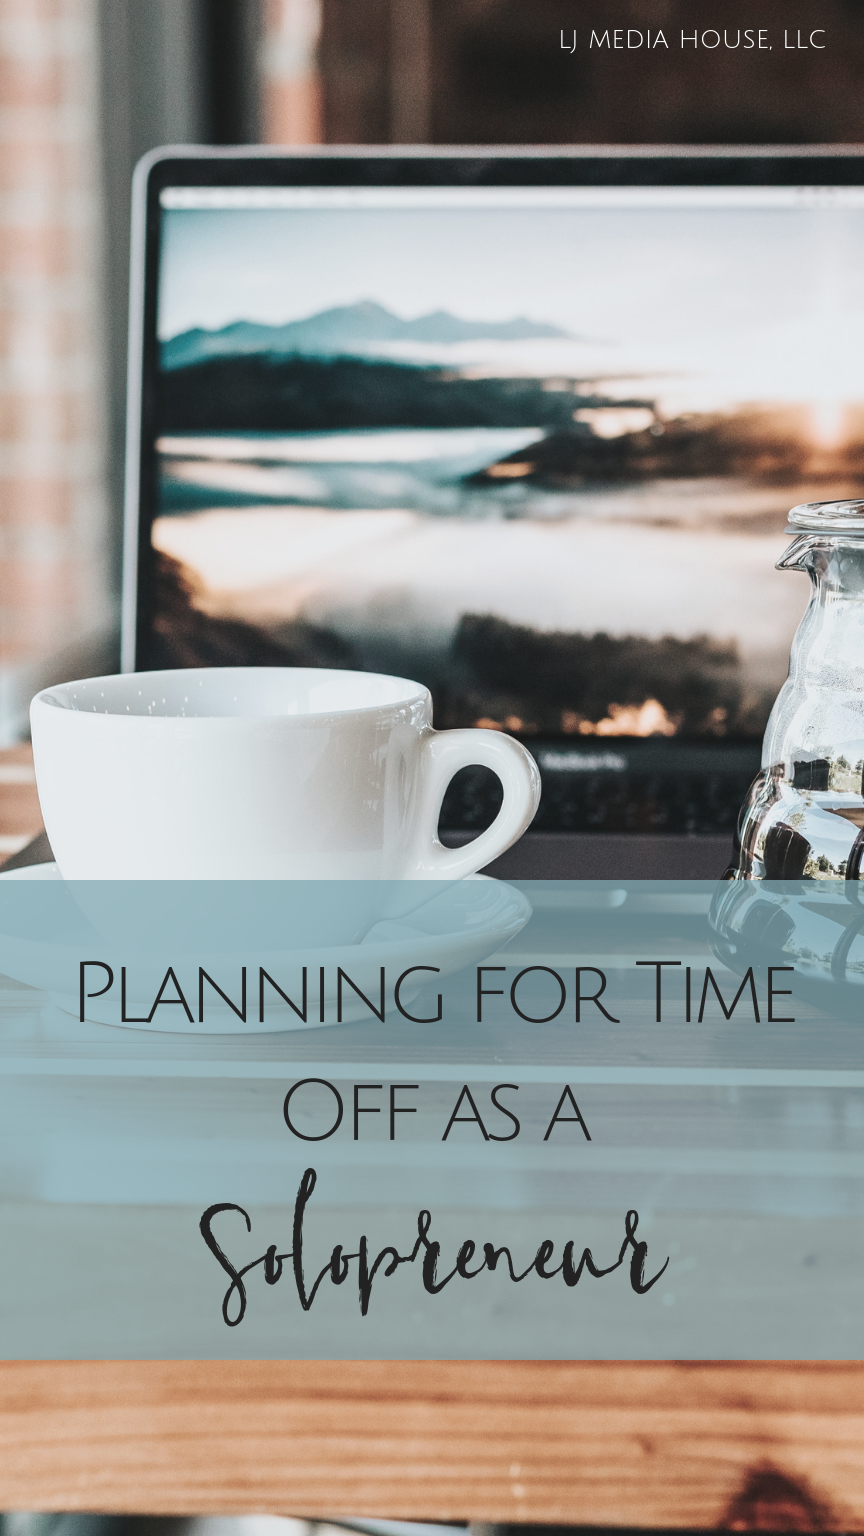 Planning for Time Off as a Solopreneur - LJ Media House